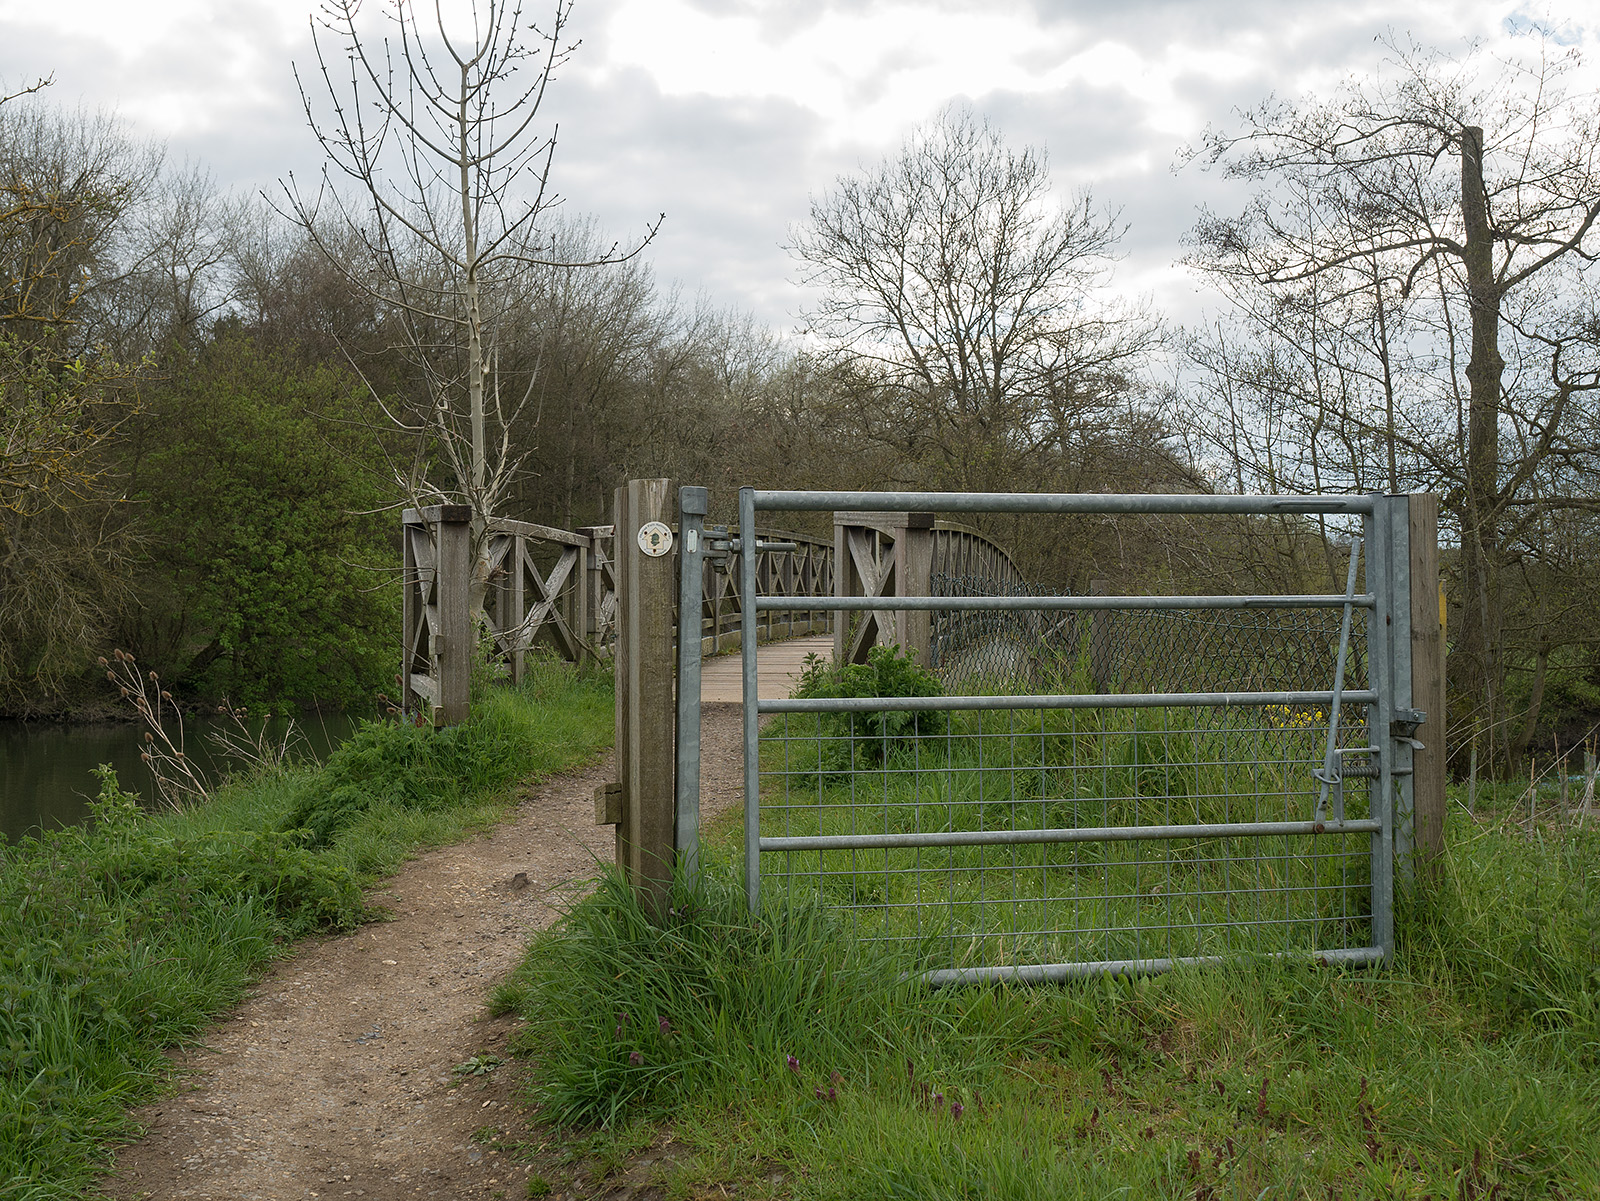 Errm, not really a useful gate any more! Approach to wooden bridge at Dorchester.